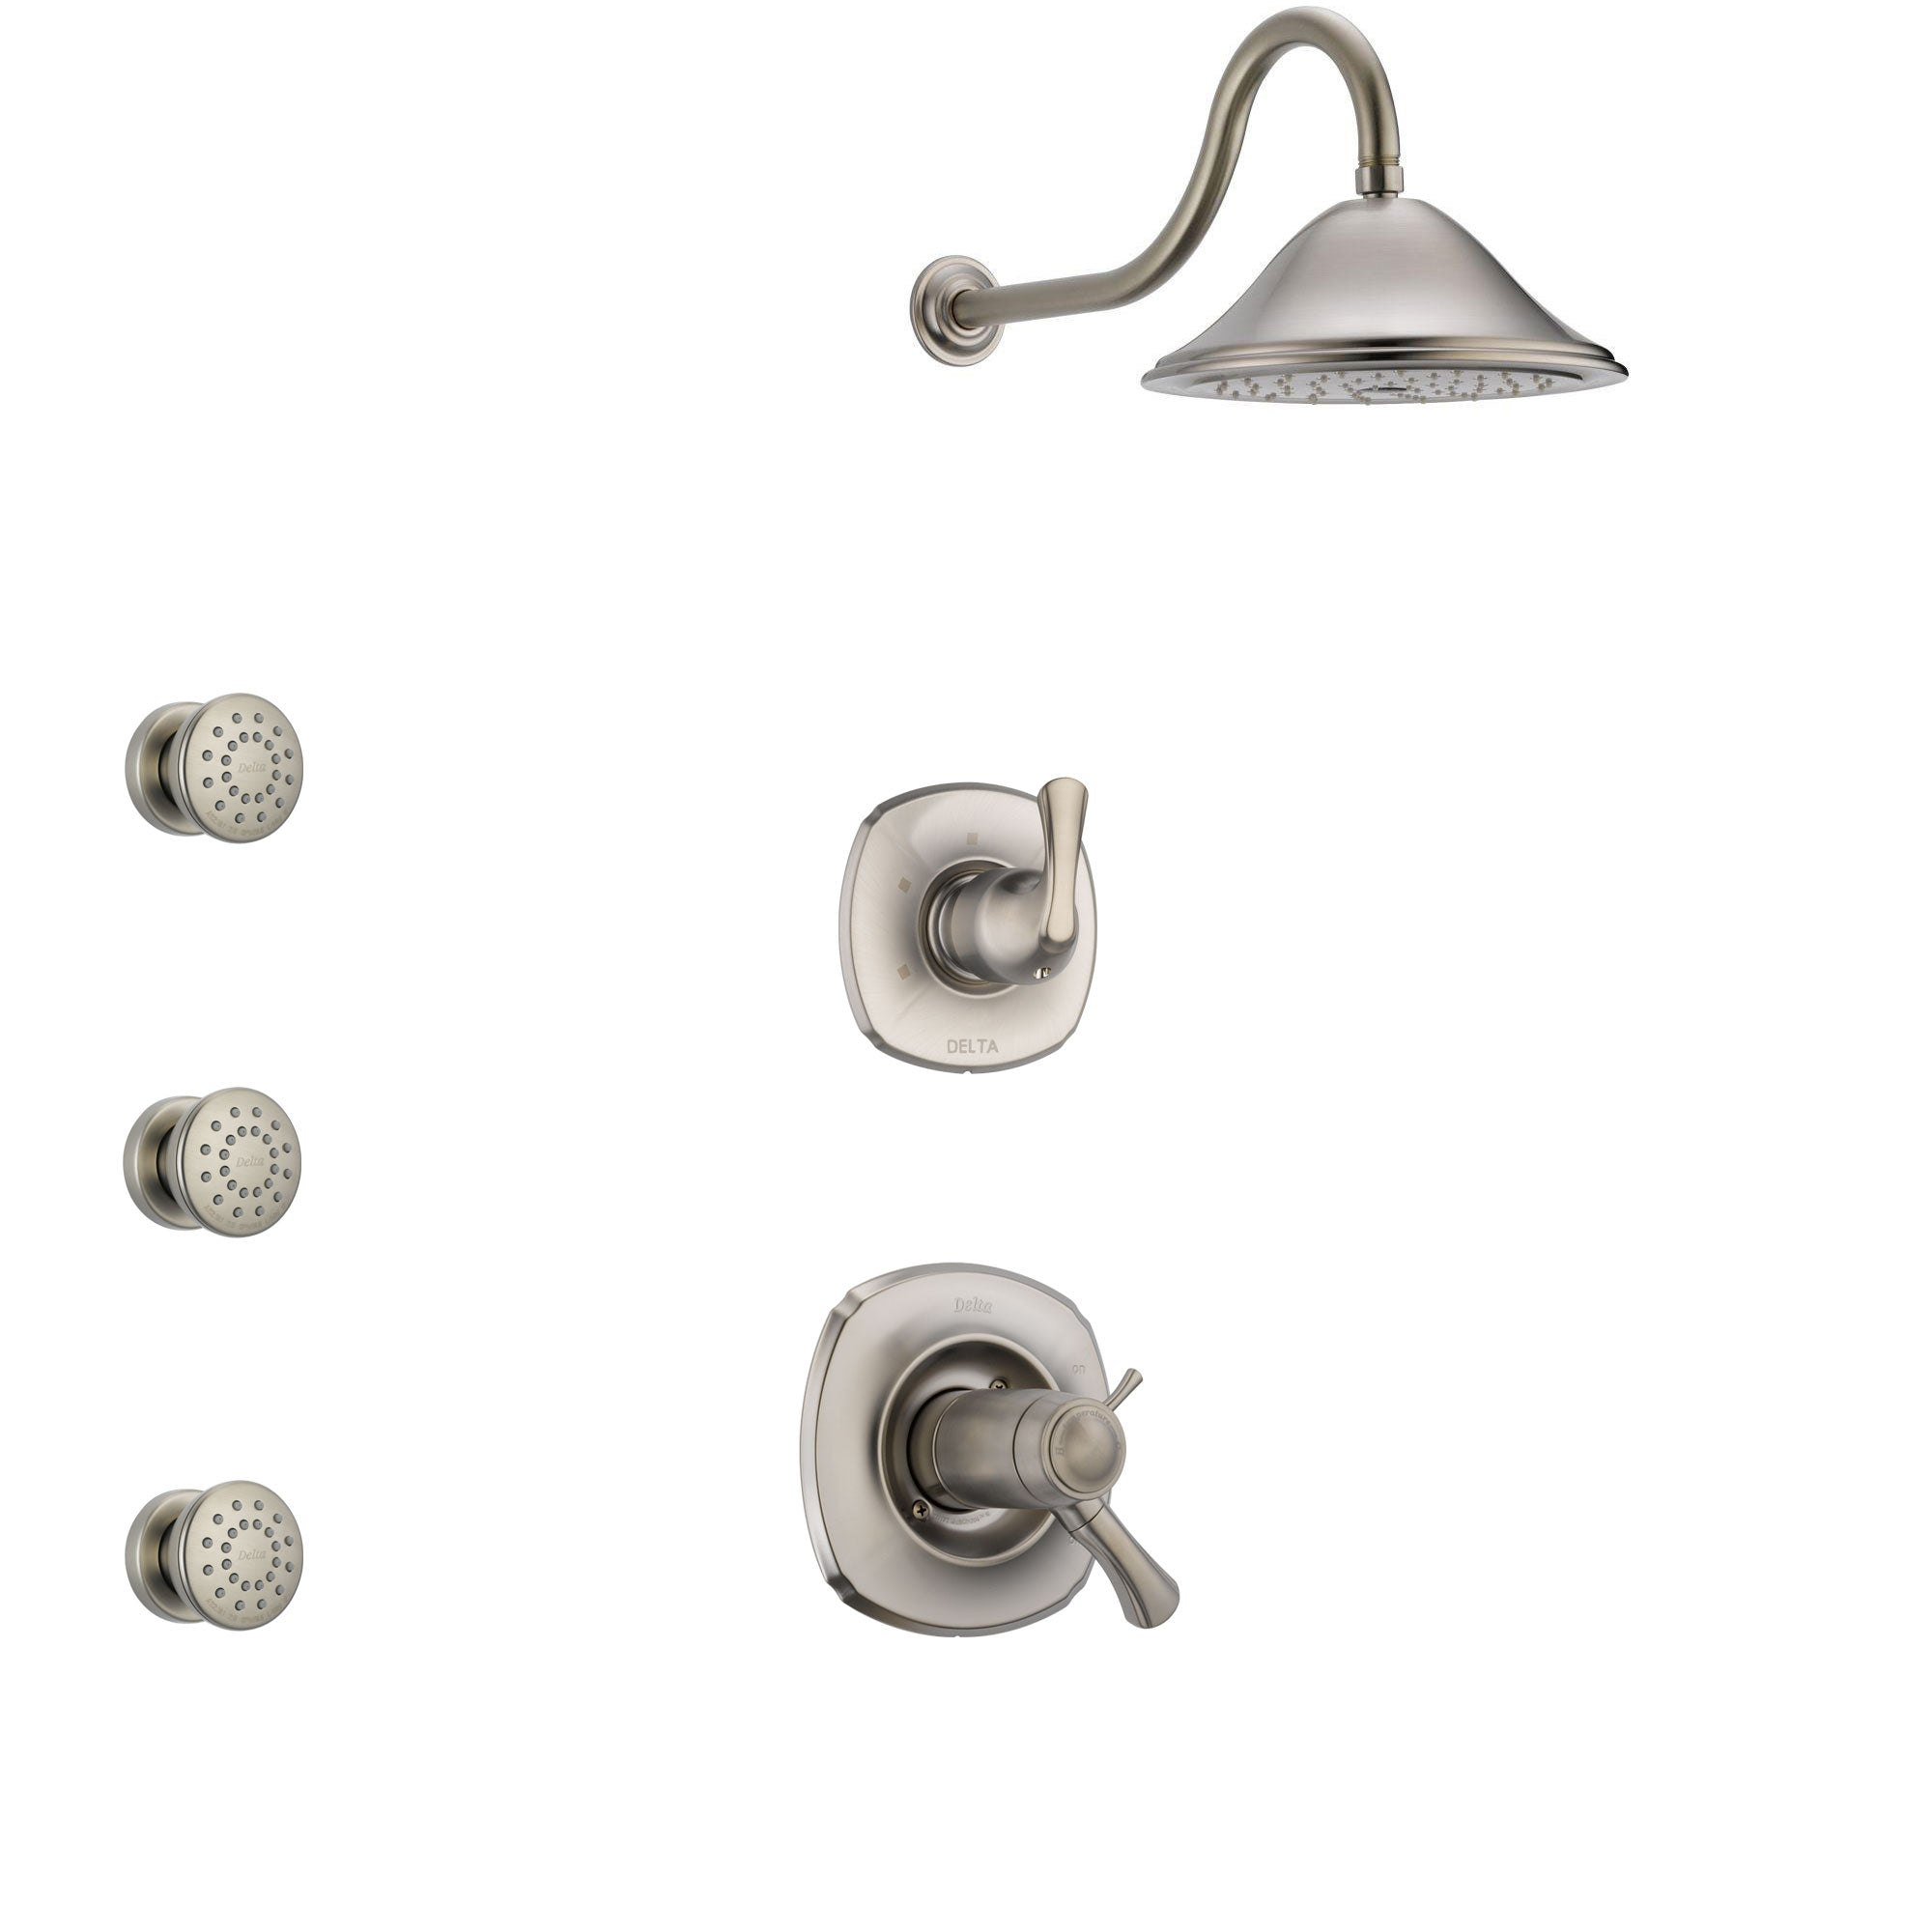 Delta Addison Dual Thermostatic Control Handle Stainless Steel Finish Shower System, 3-Setting Diverter, Showerhead, and 3 Body Sprays SS17T921SS3